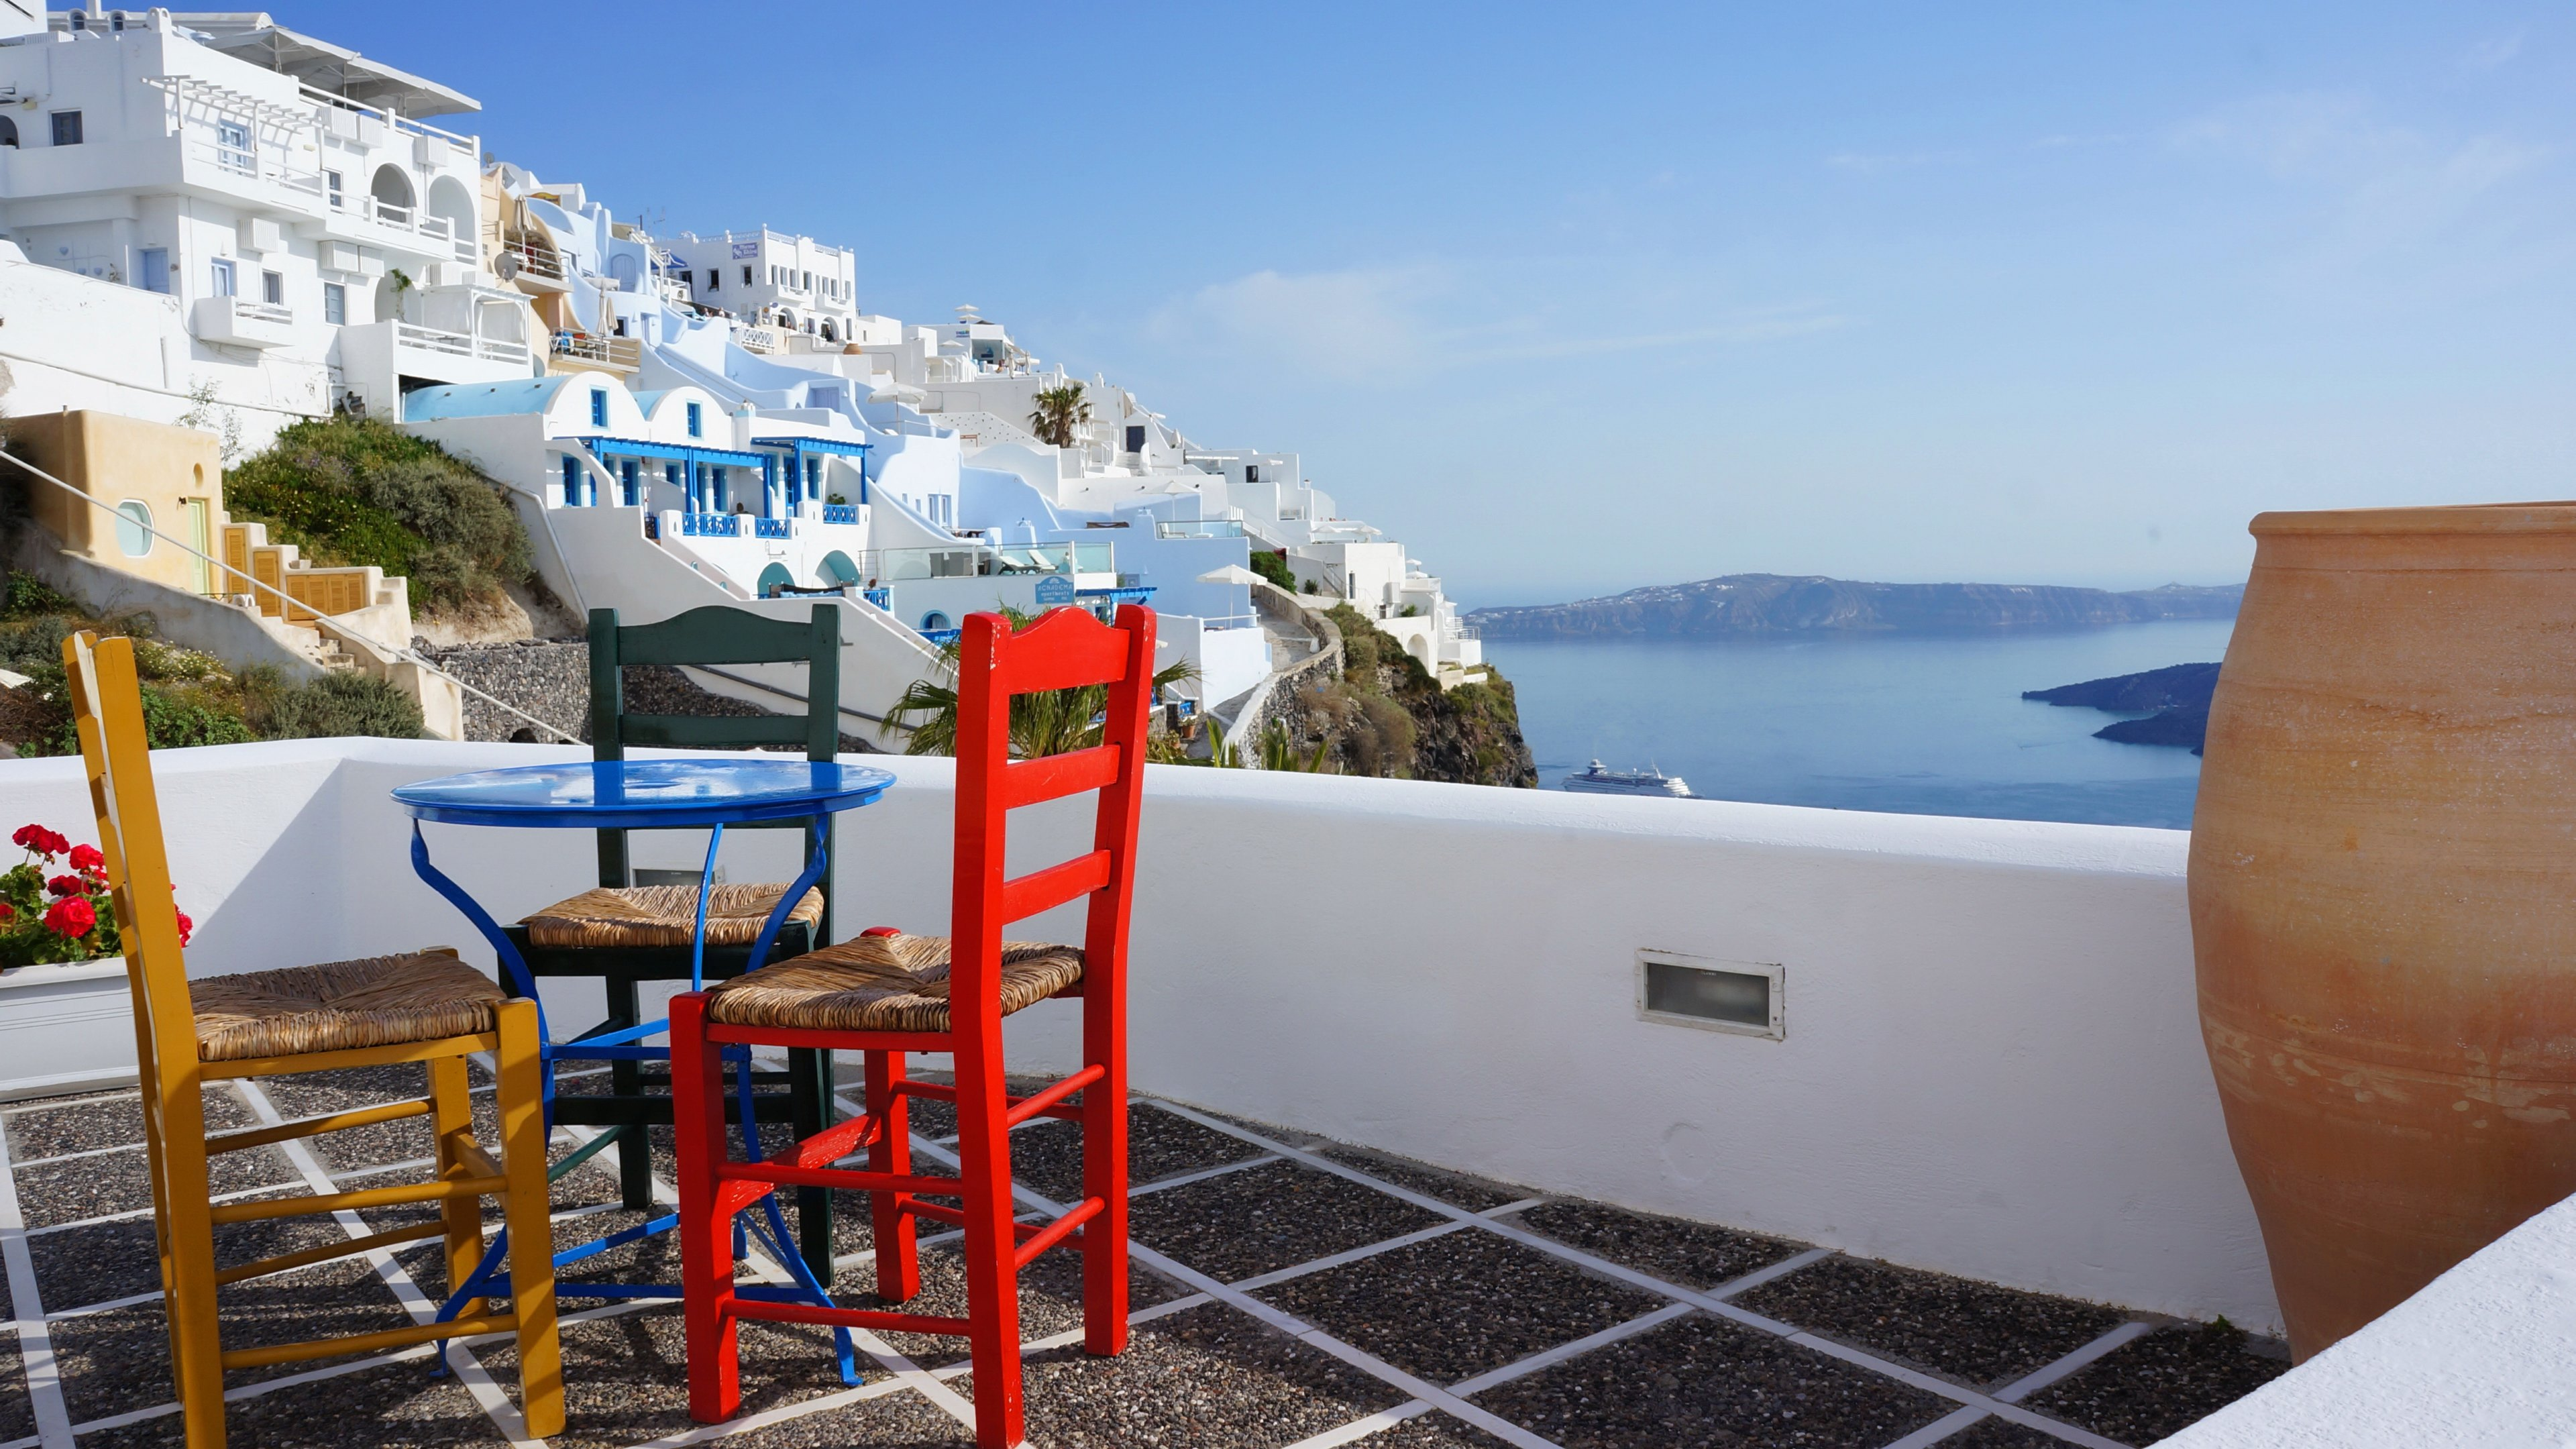 View from Santorini Porch 4k Ultra HD Wallpaper Background Image 3840x2160